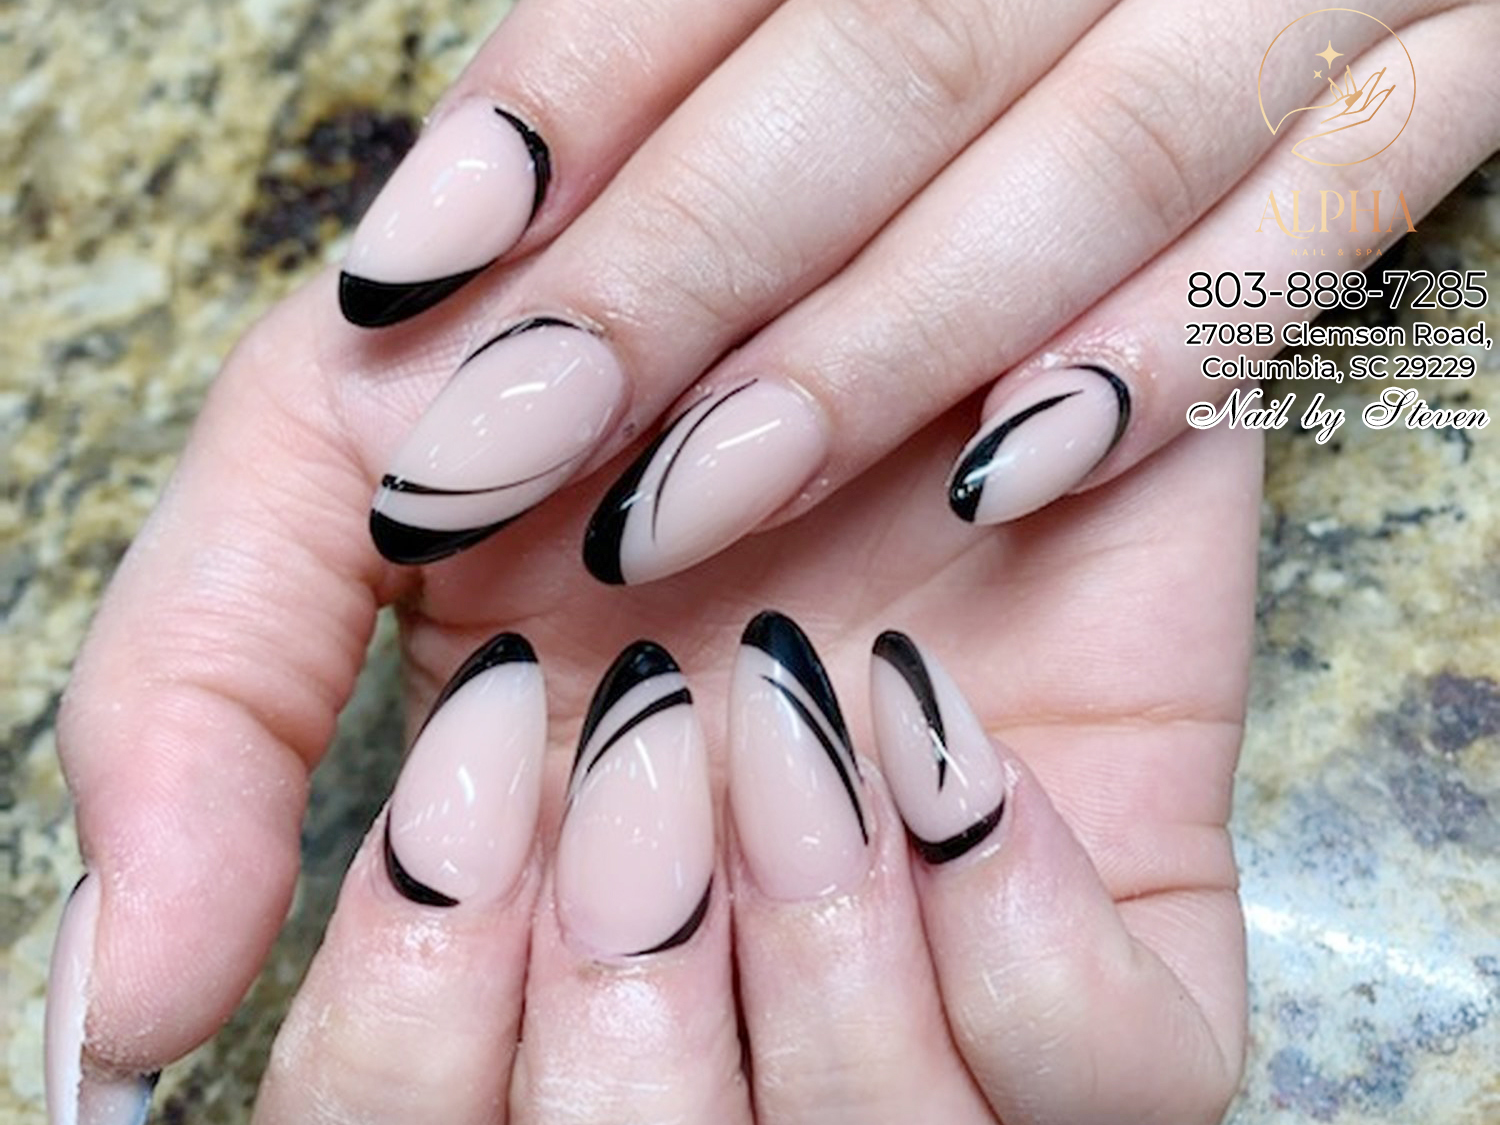 Some modern nail design for people in Columbia, SC 29229